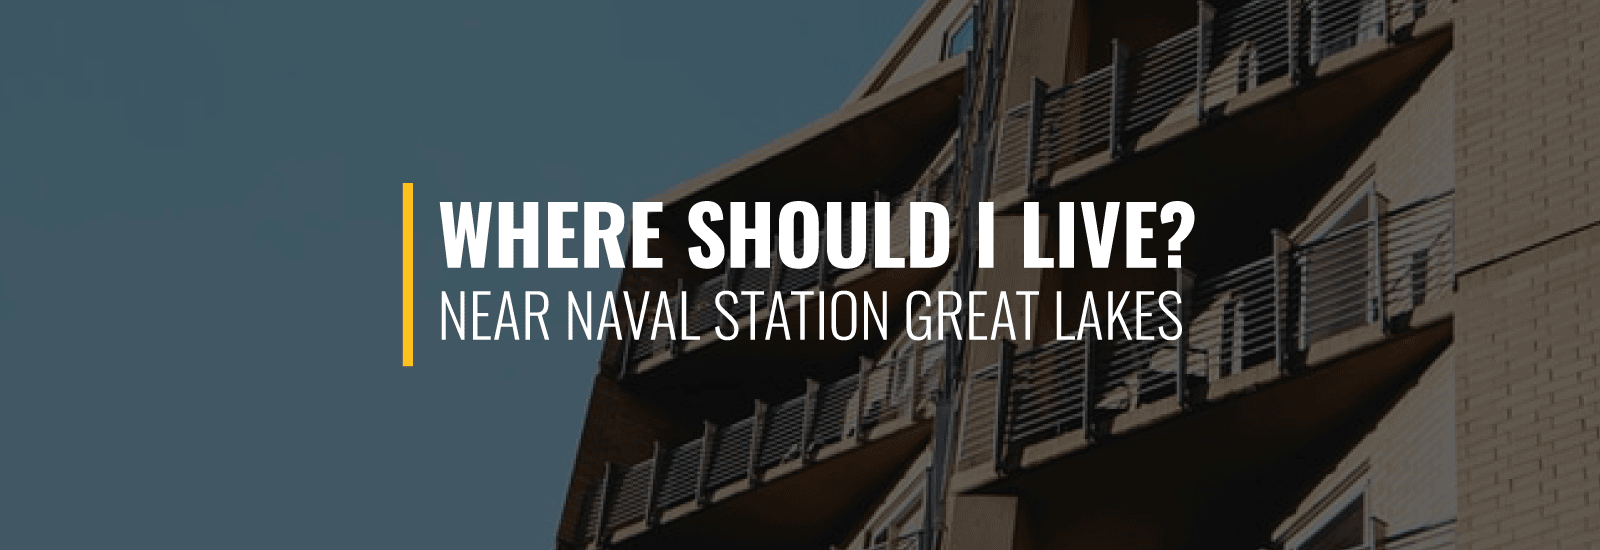 Where Should I Live Near Naval Station Great Lakes